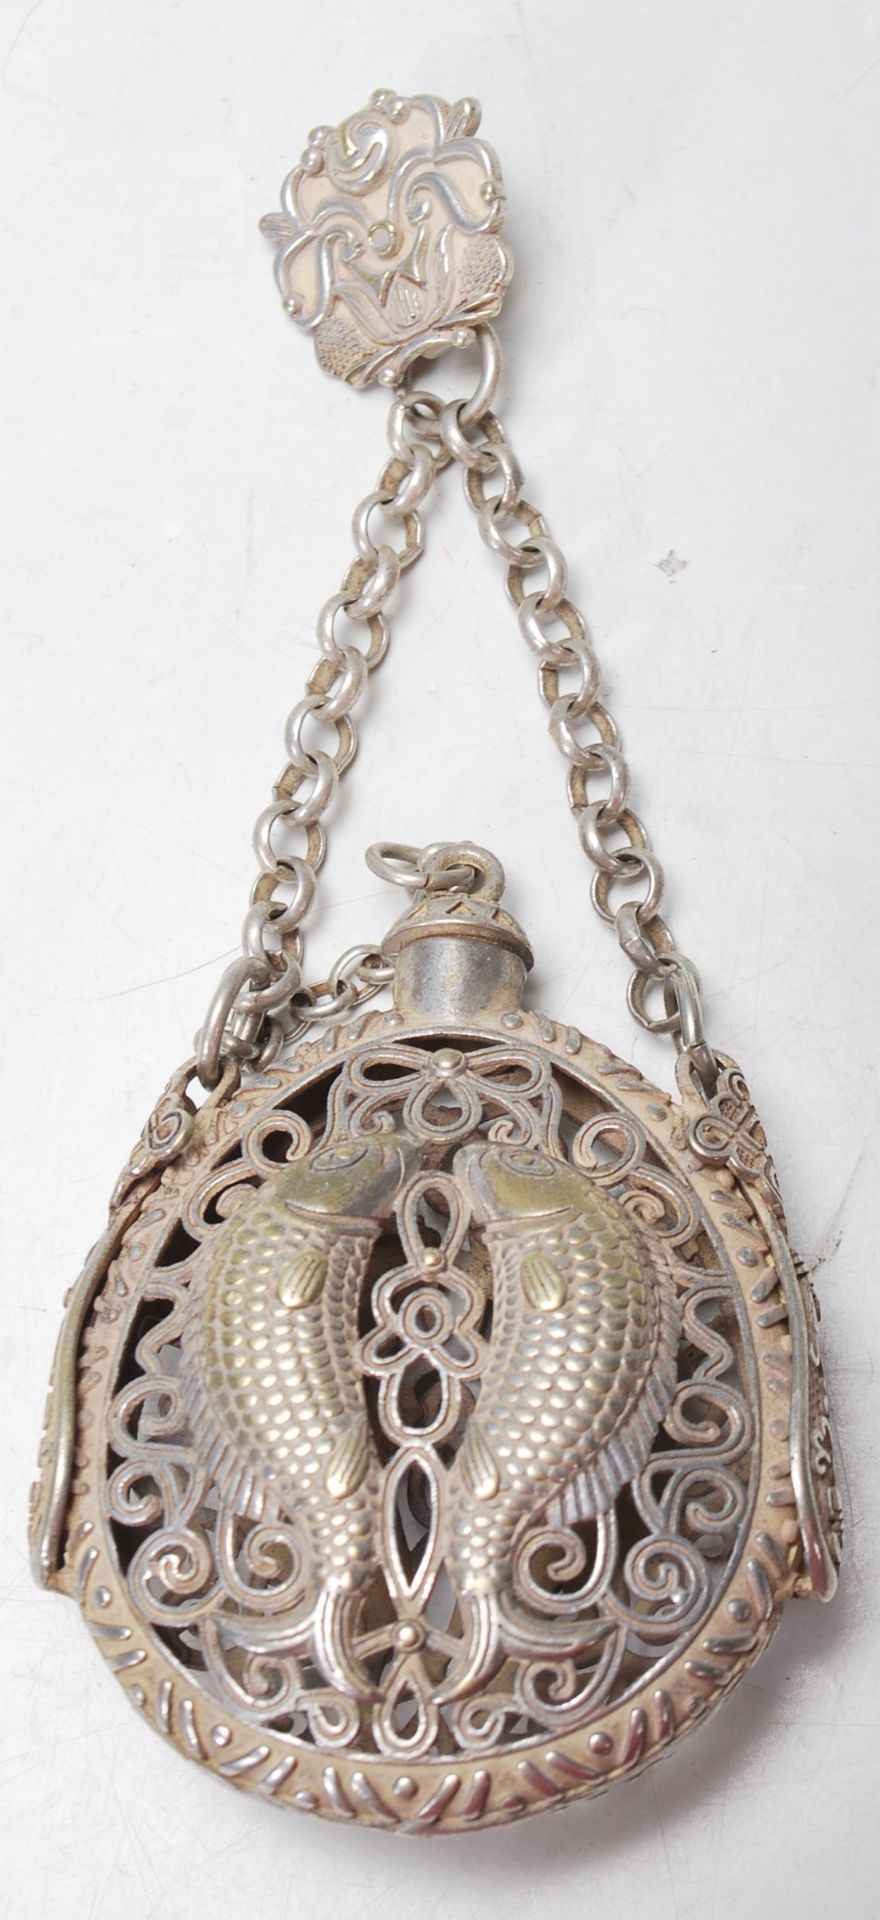 VINTAGE 20TH CENTURY SILVER / WHITE METAL CHINESE SCENT BOTTLE WITH PIERCED DECORATION